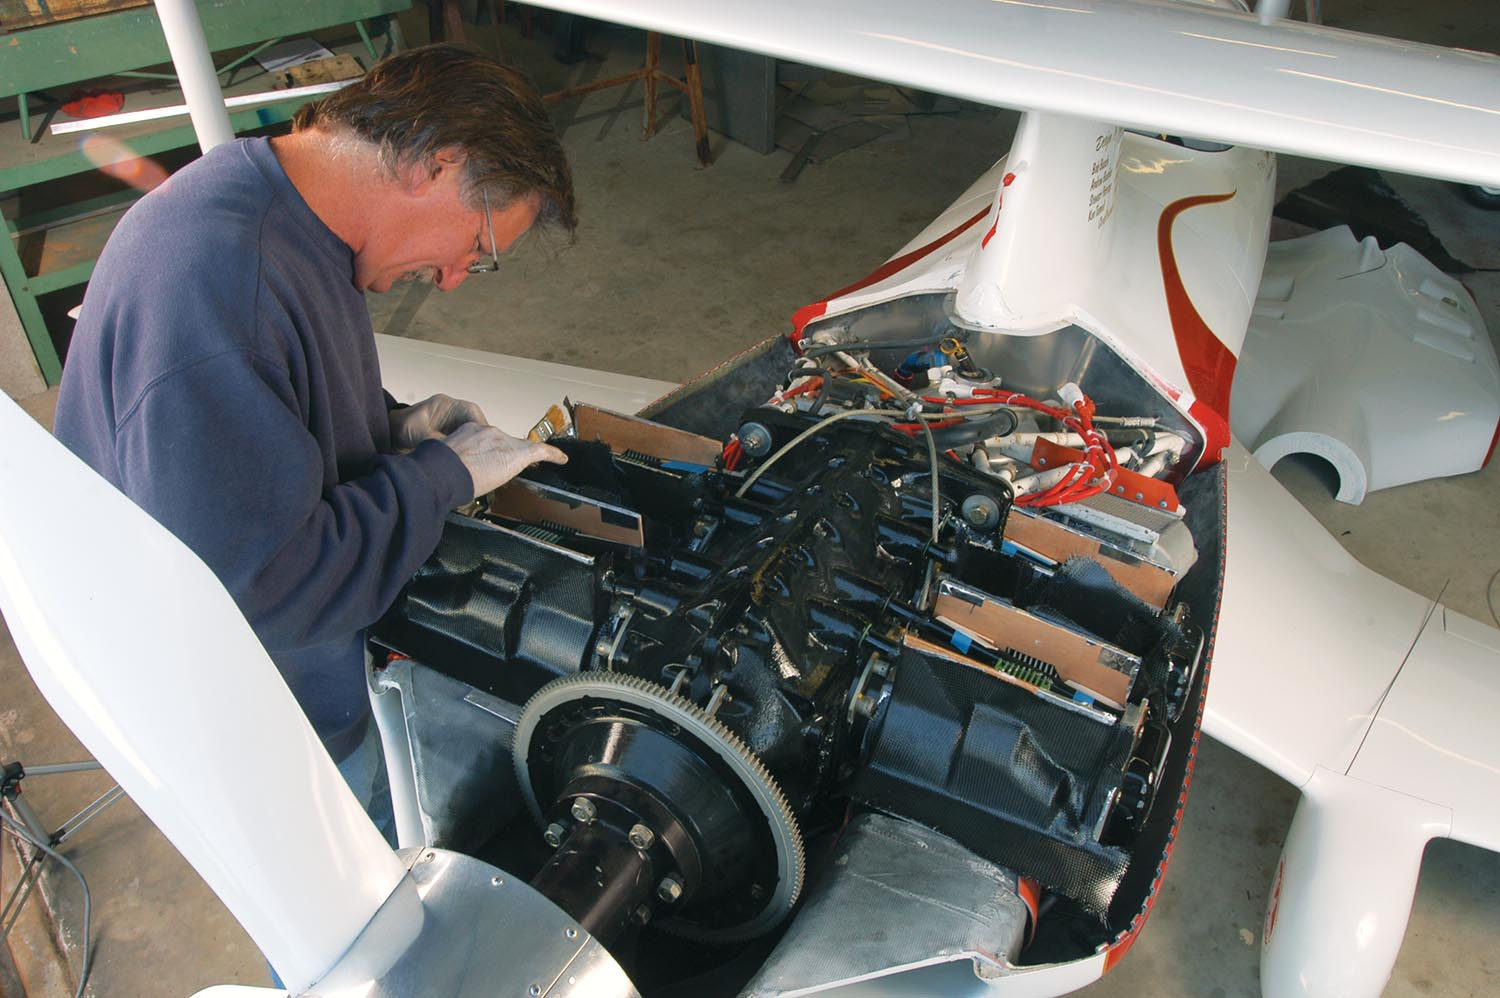 Phantom's first cylinder exit air baffles were horrid tape-and-aluminum rush jobs. Later Andy built these proper carbon fiber baffles. Engine cooling has never been an issue with the updraft cooling system, an idea Tom Aberle took from Bill Falck's Rivets F1 racer.